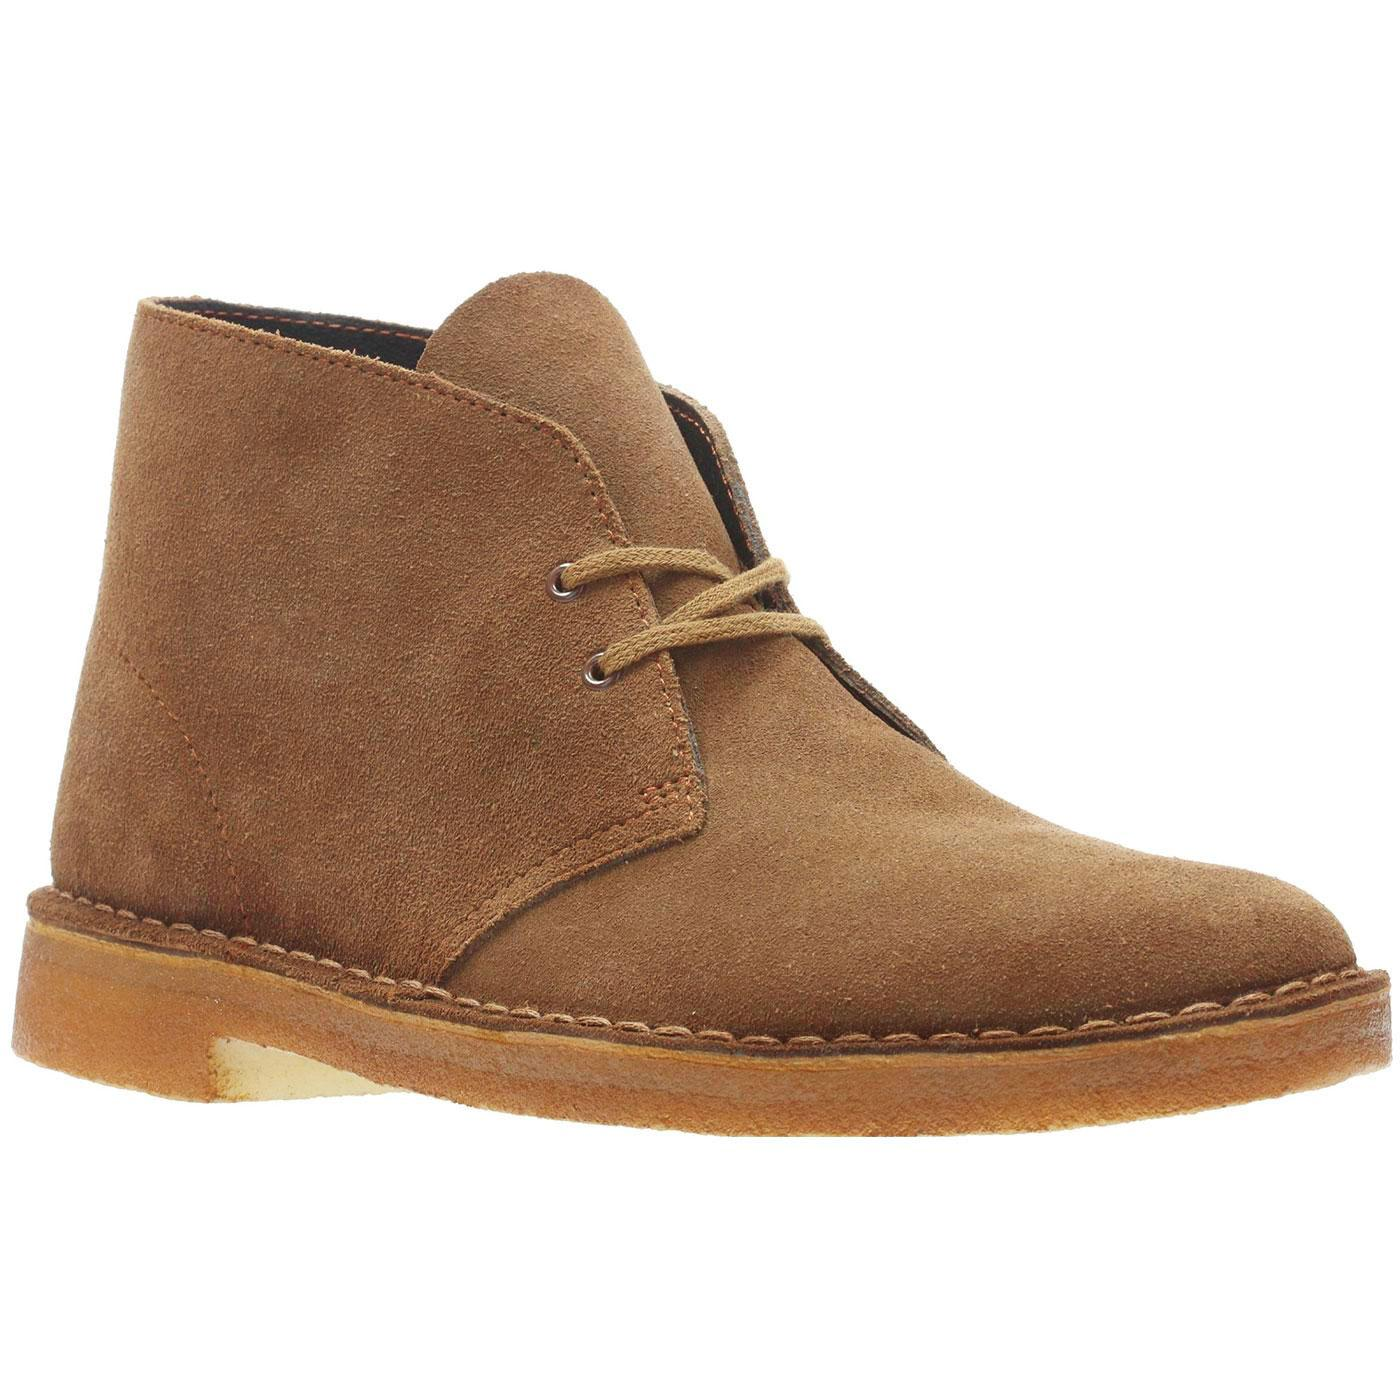 CLARKS ORIGINALS Men's Mod Suede Desert Boots COLA